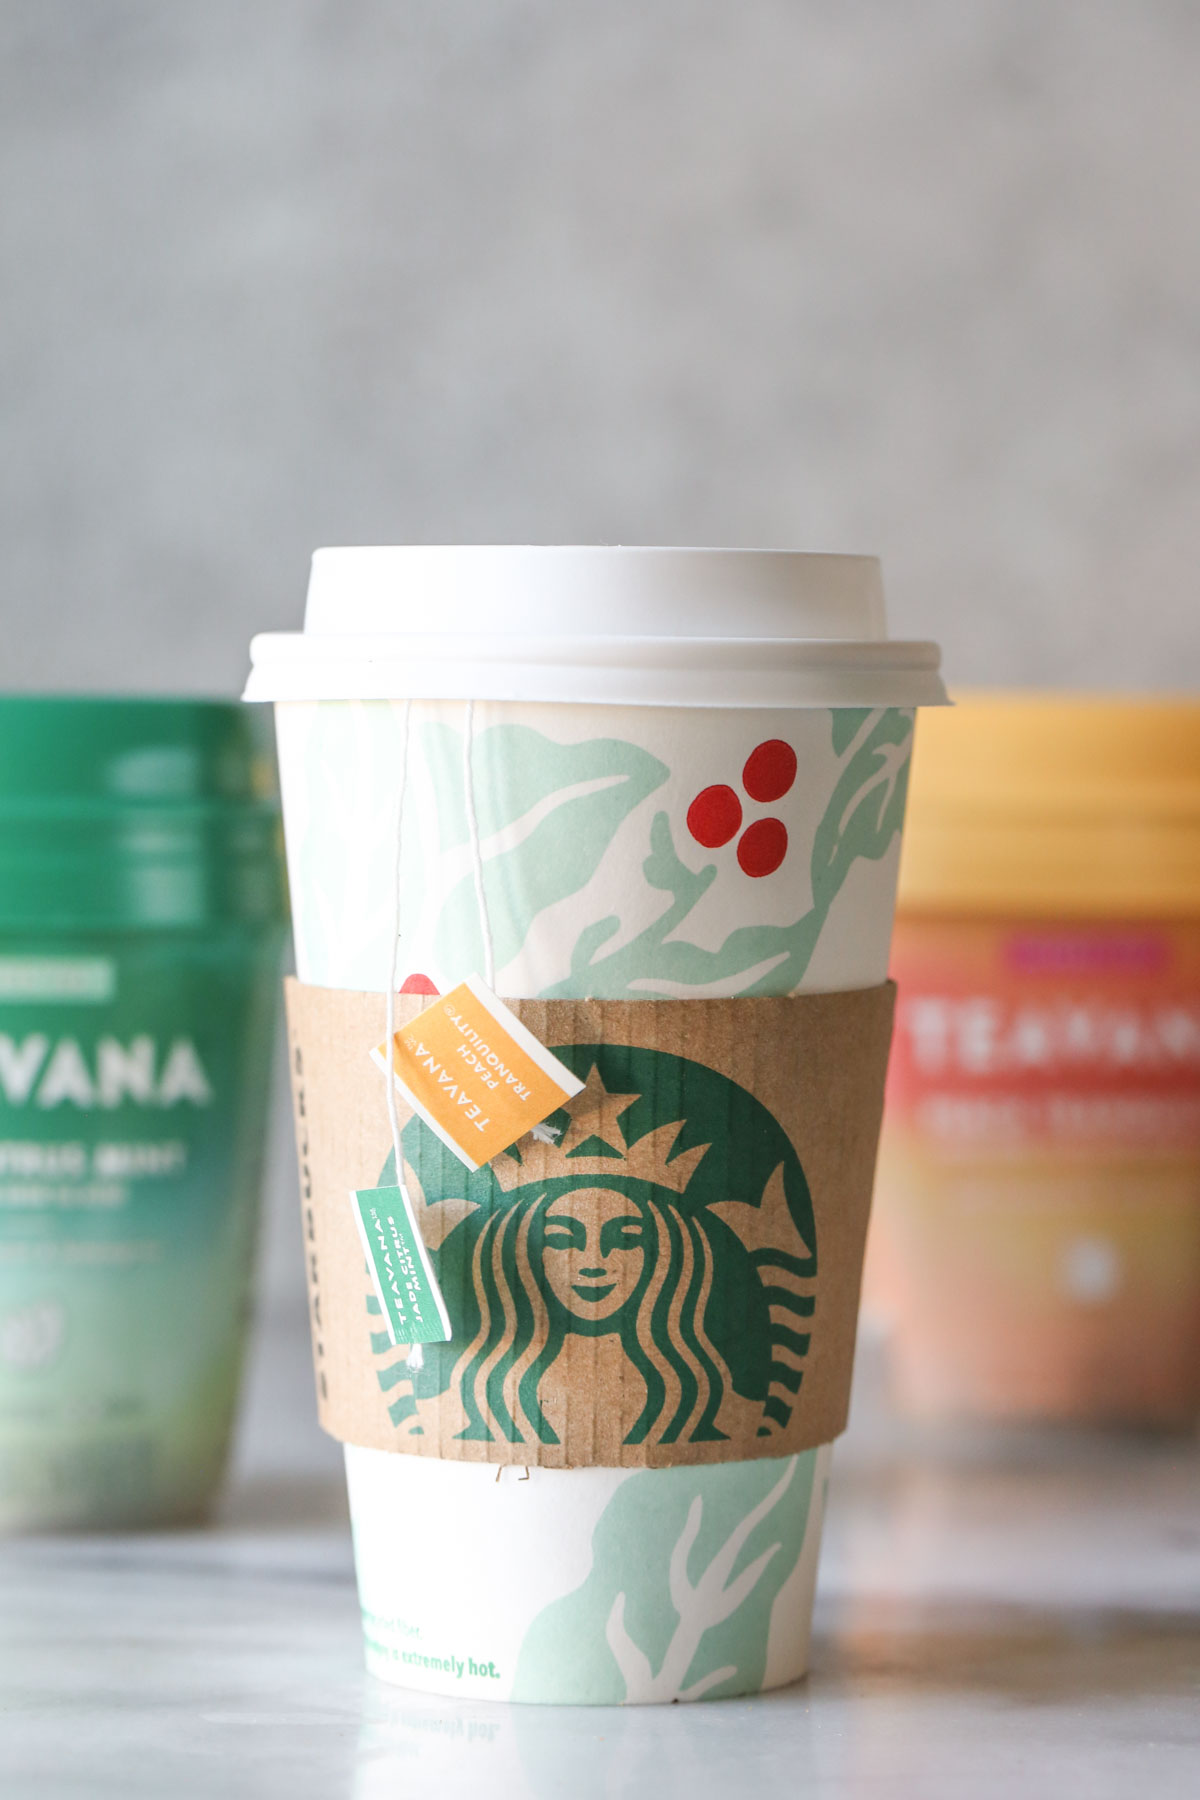 A Starbucks Medicine Ball Tea in a Starbucks hot cup, with the tea bag labels hanging over the side, and the Teavana tea packages in the background.